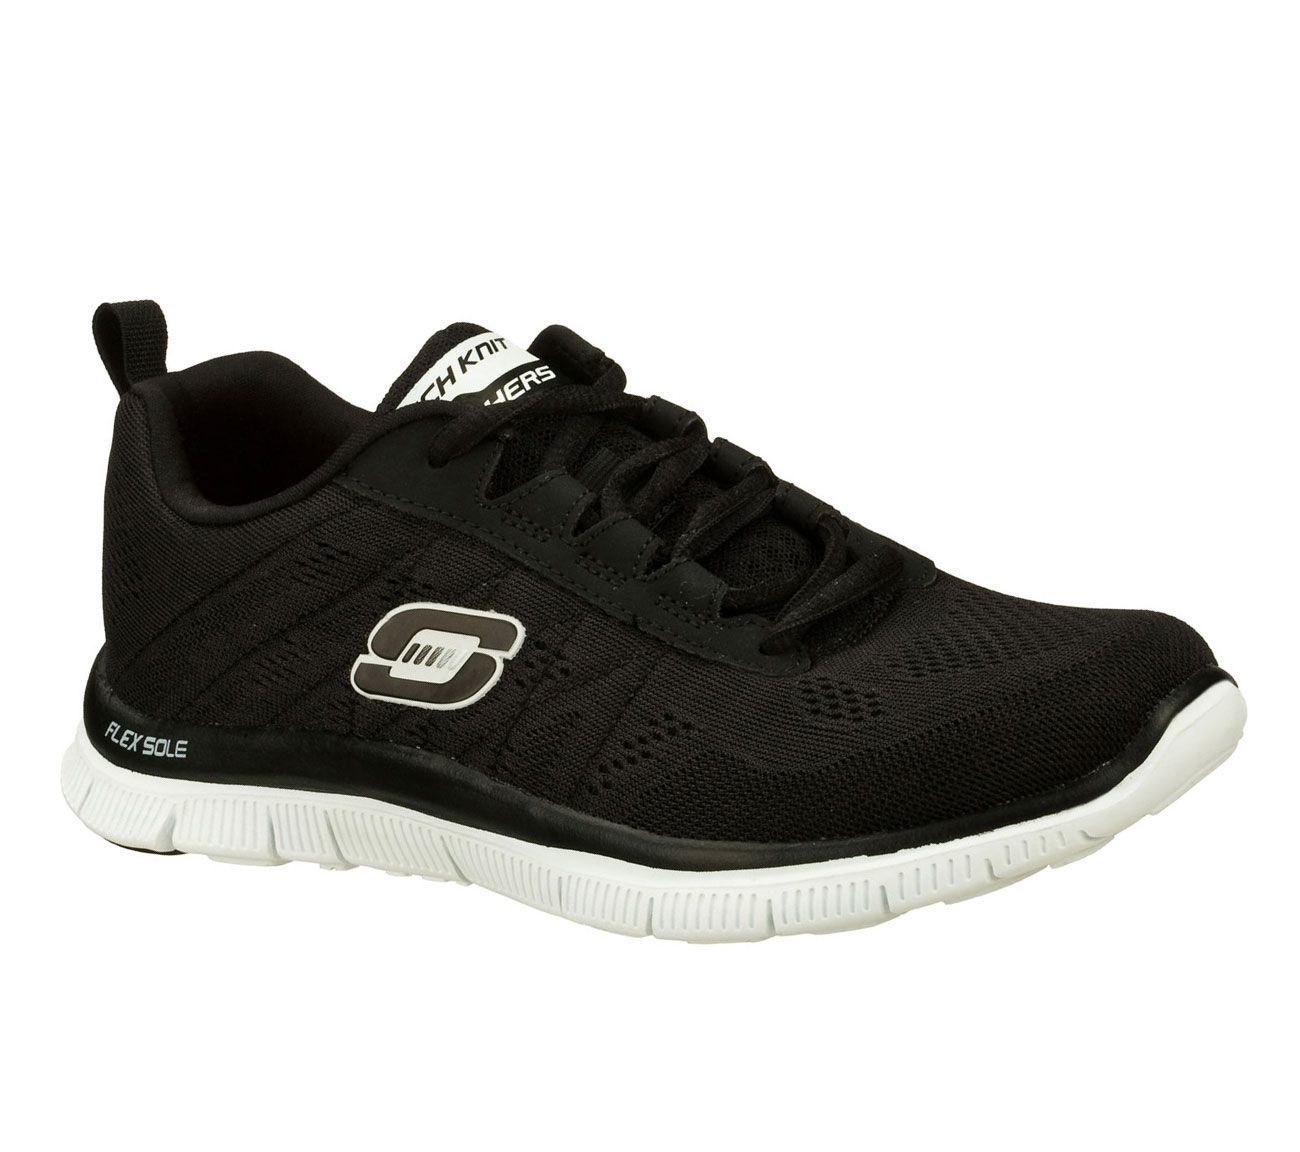 5b9b89da2656f Buy skechers skech knit memory foam > OFF48% Discounted